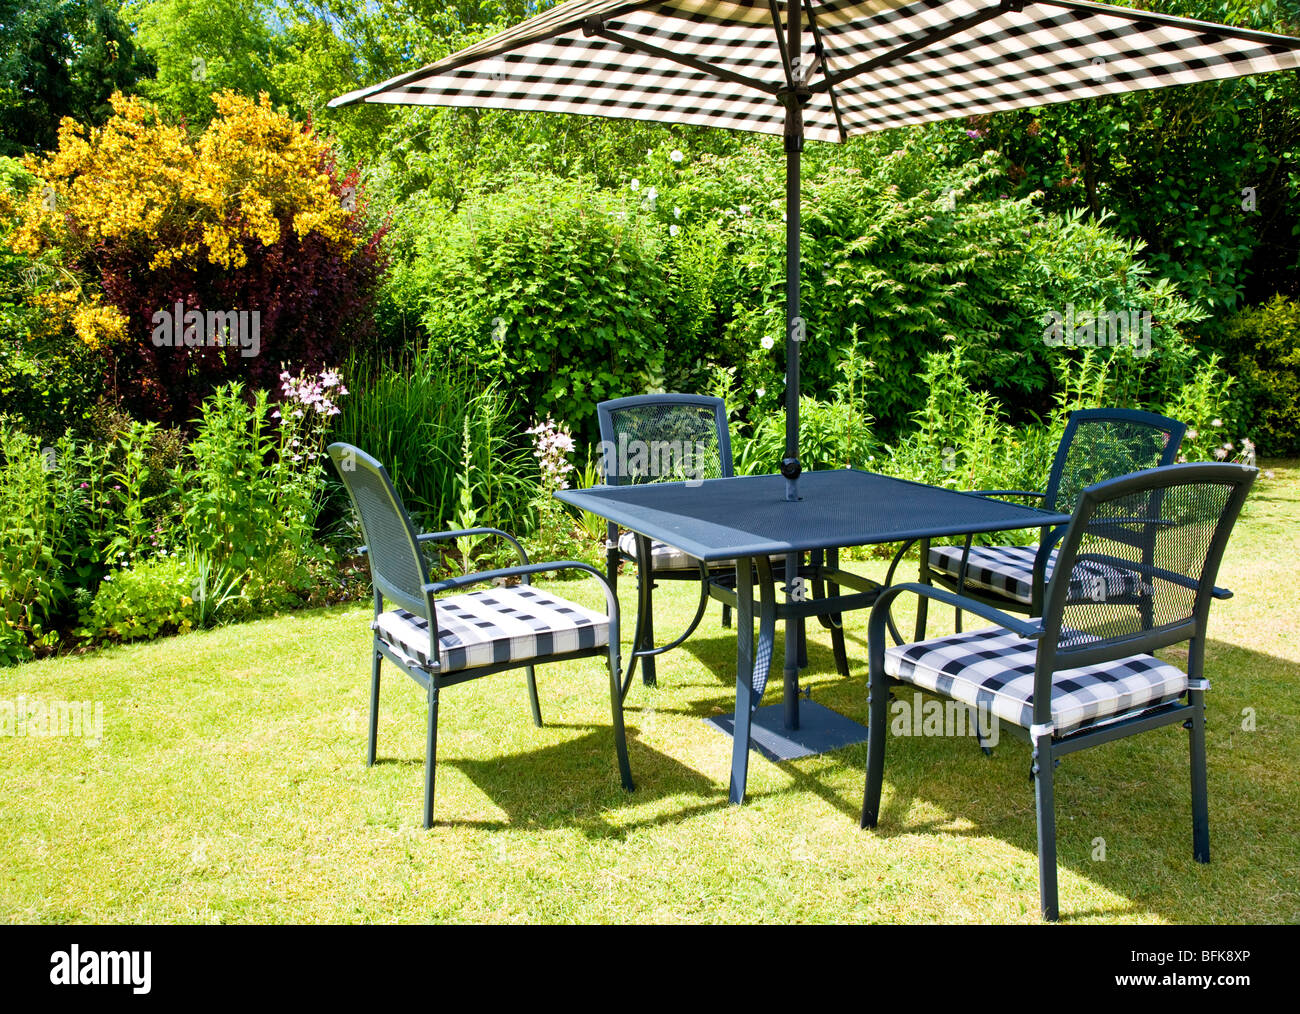 summer outdoor furniture. Modern Garden Furniture Set Out On A Lawn In Typical English Country Or Suburban Sunny Day Summer Outdoor